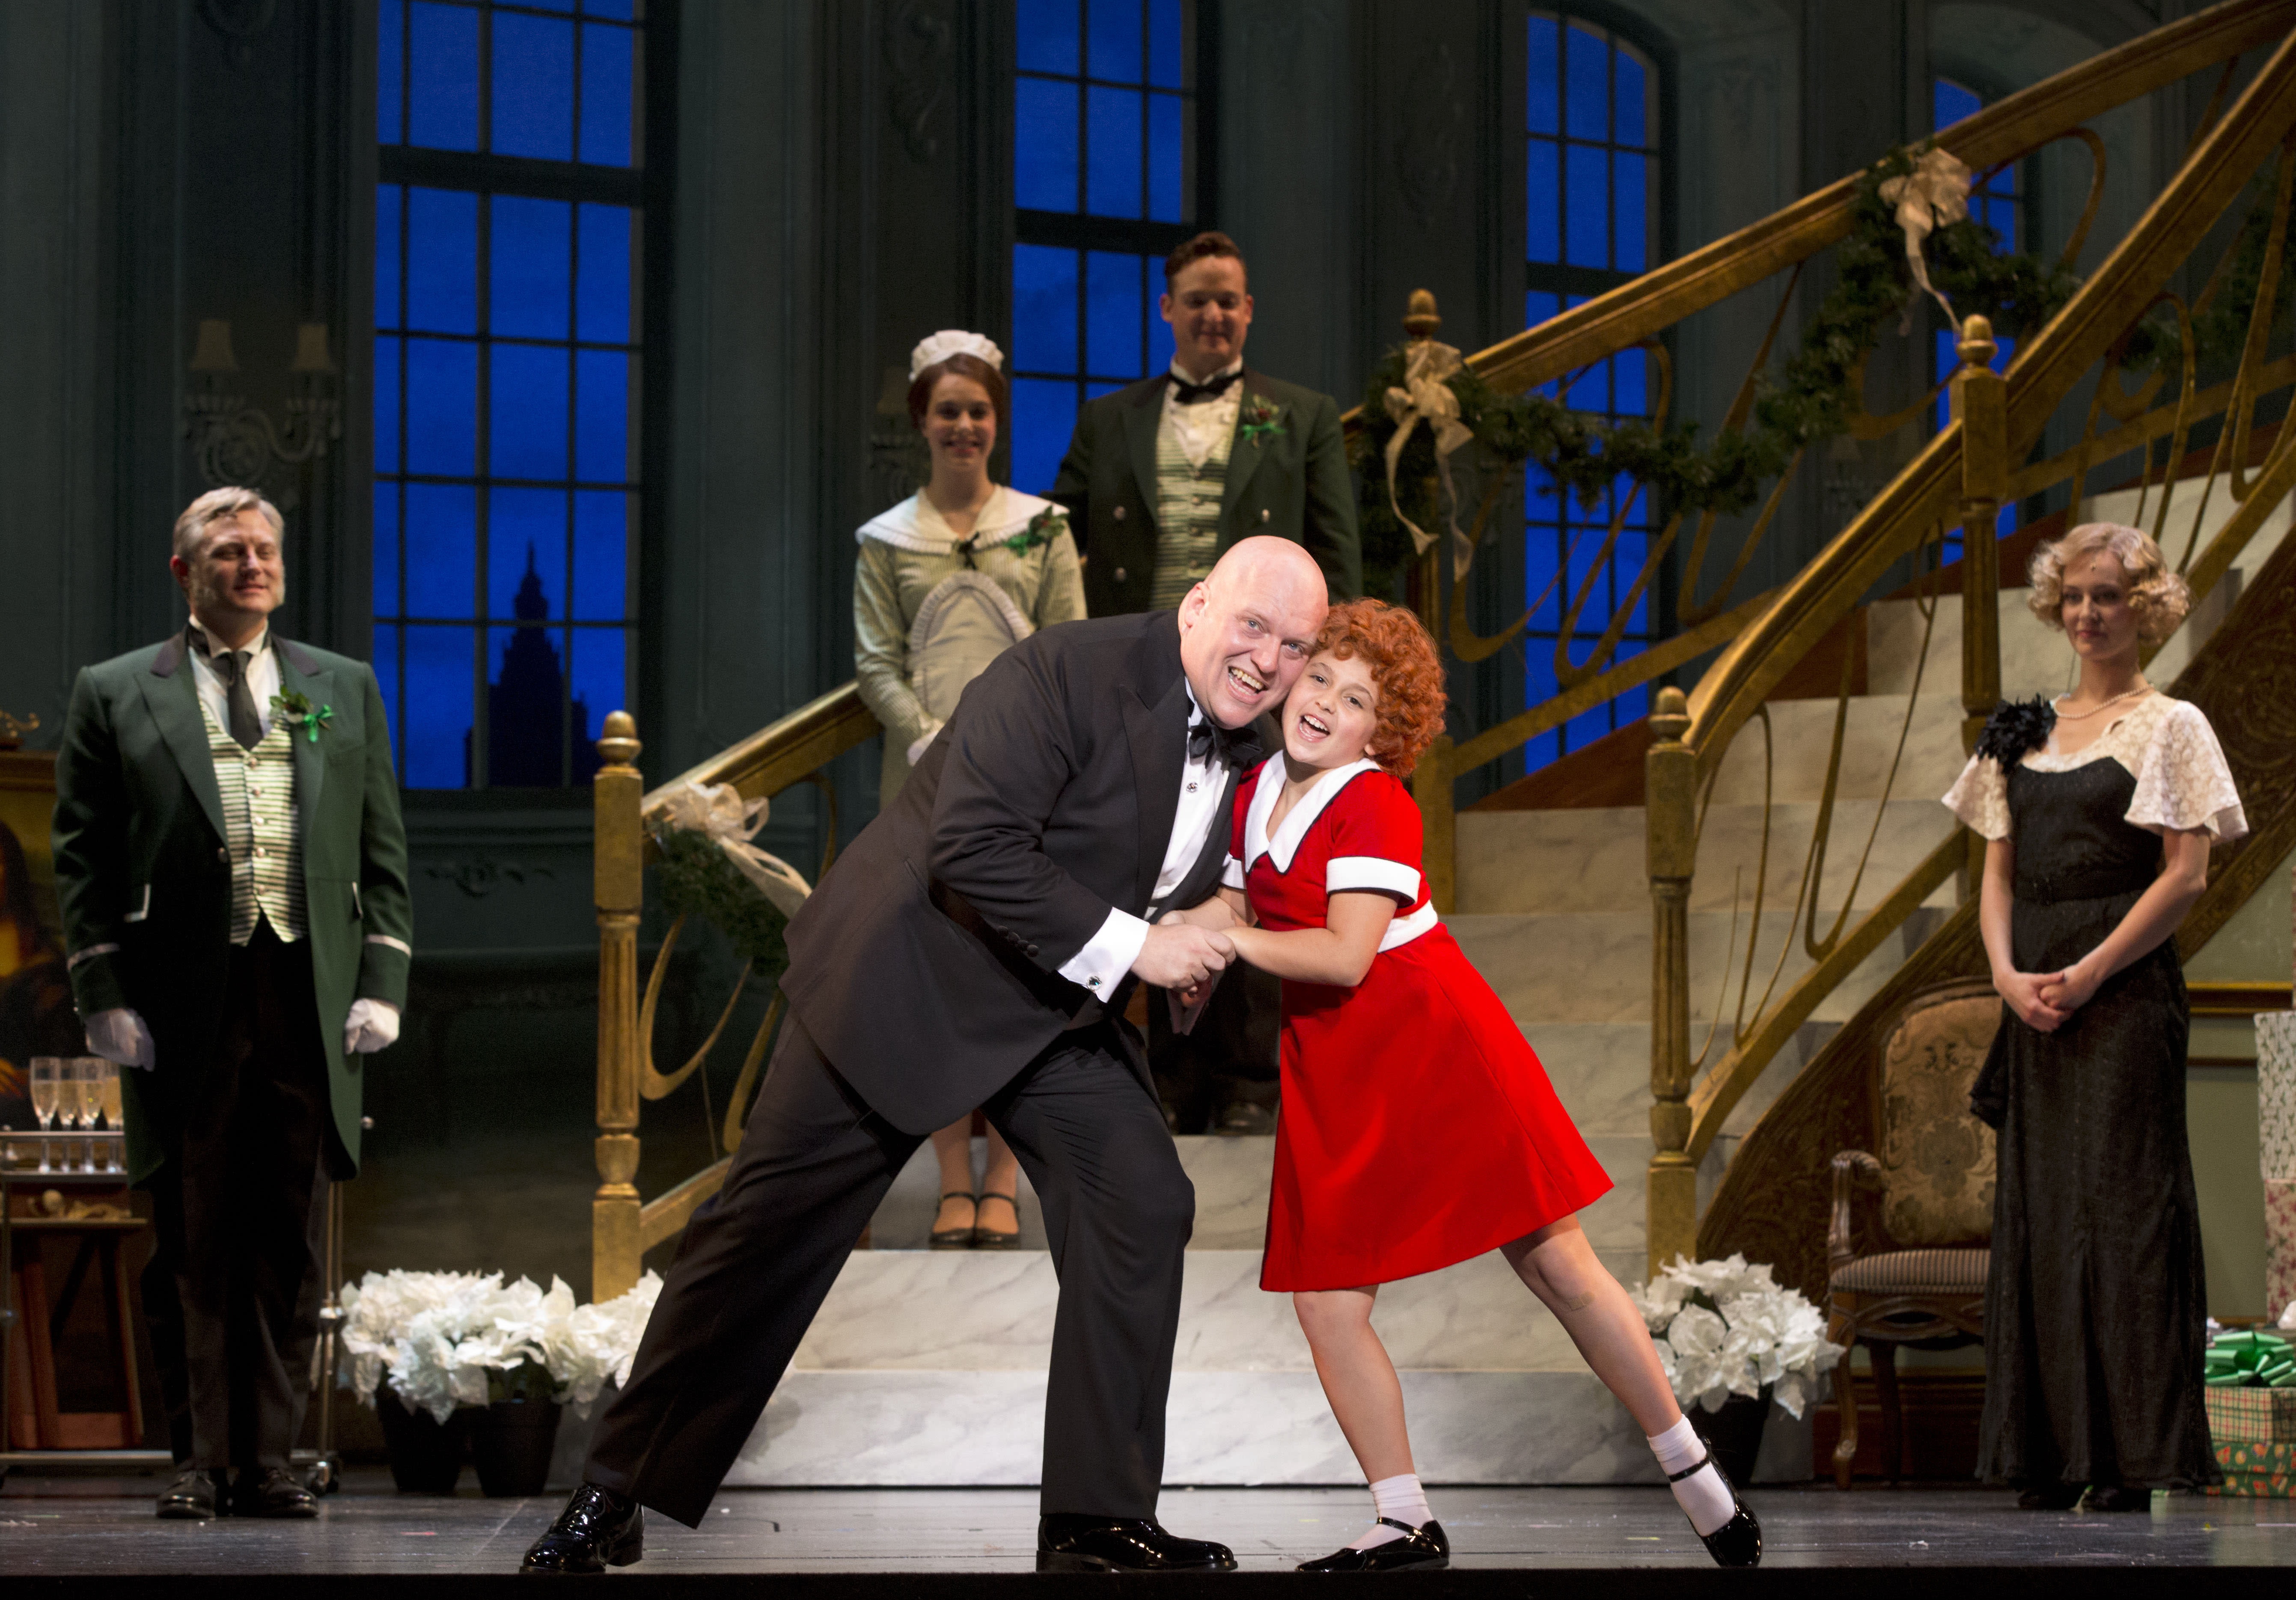 Annie - The Musical brings beloved characters to life.